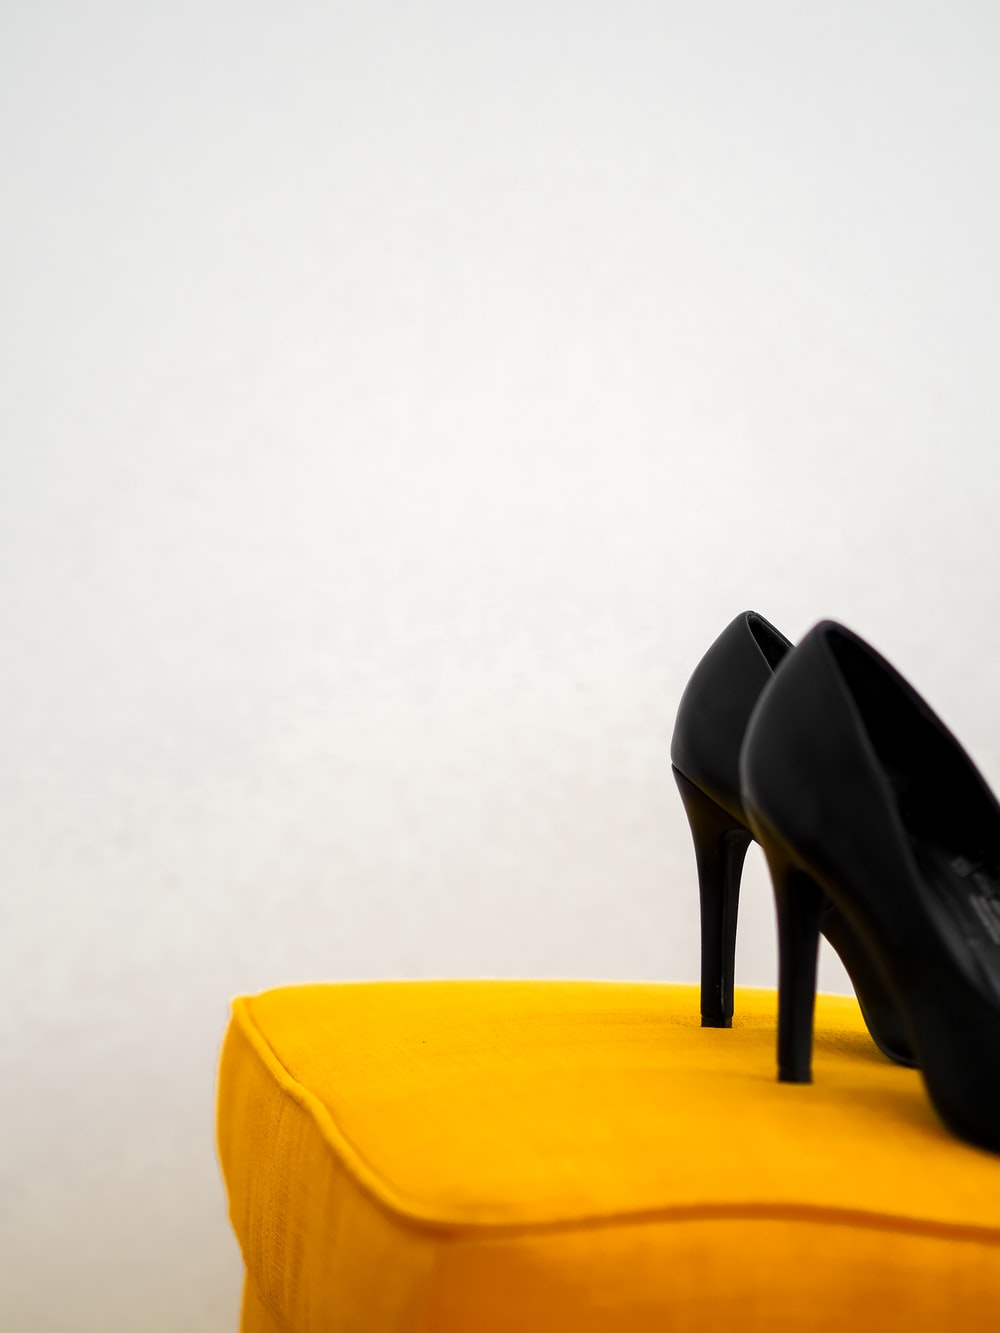 black leather heeled shoes on yellow chair